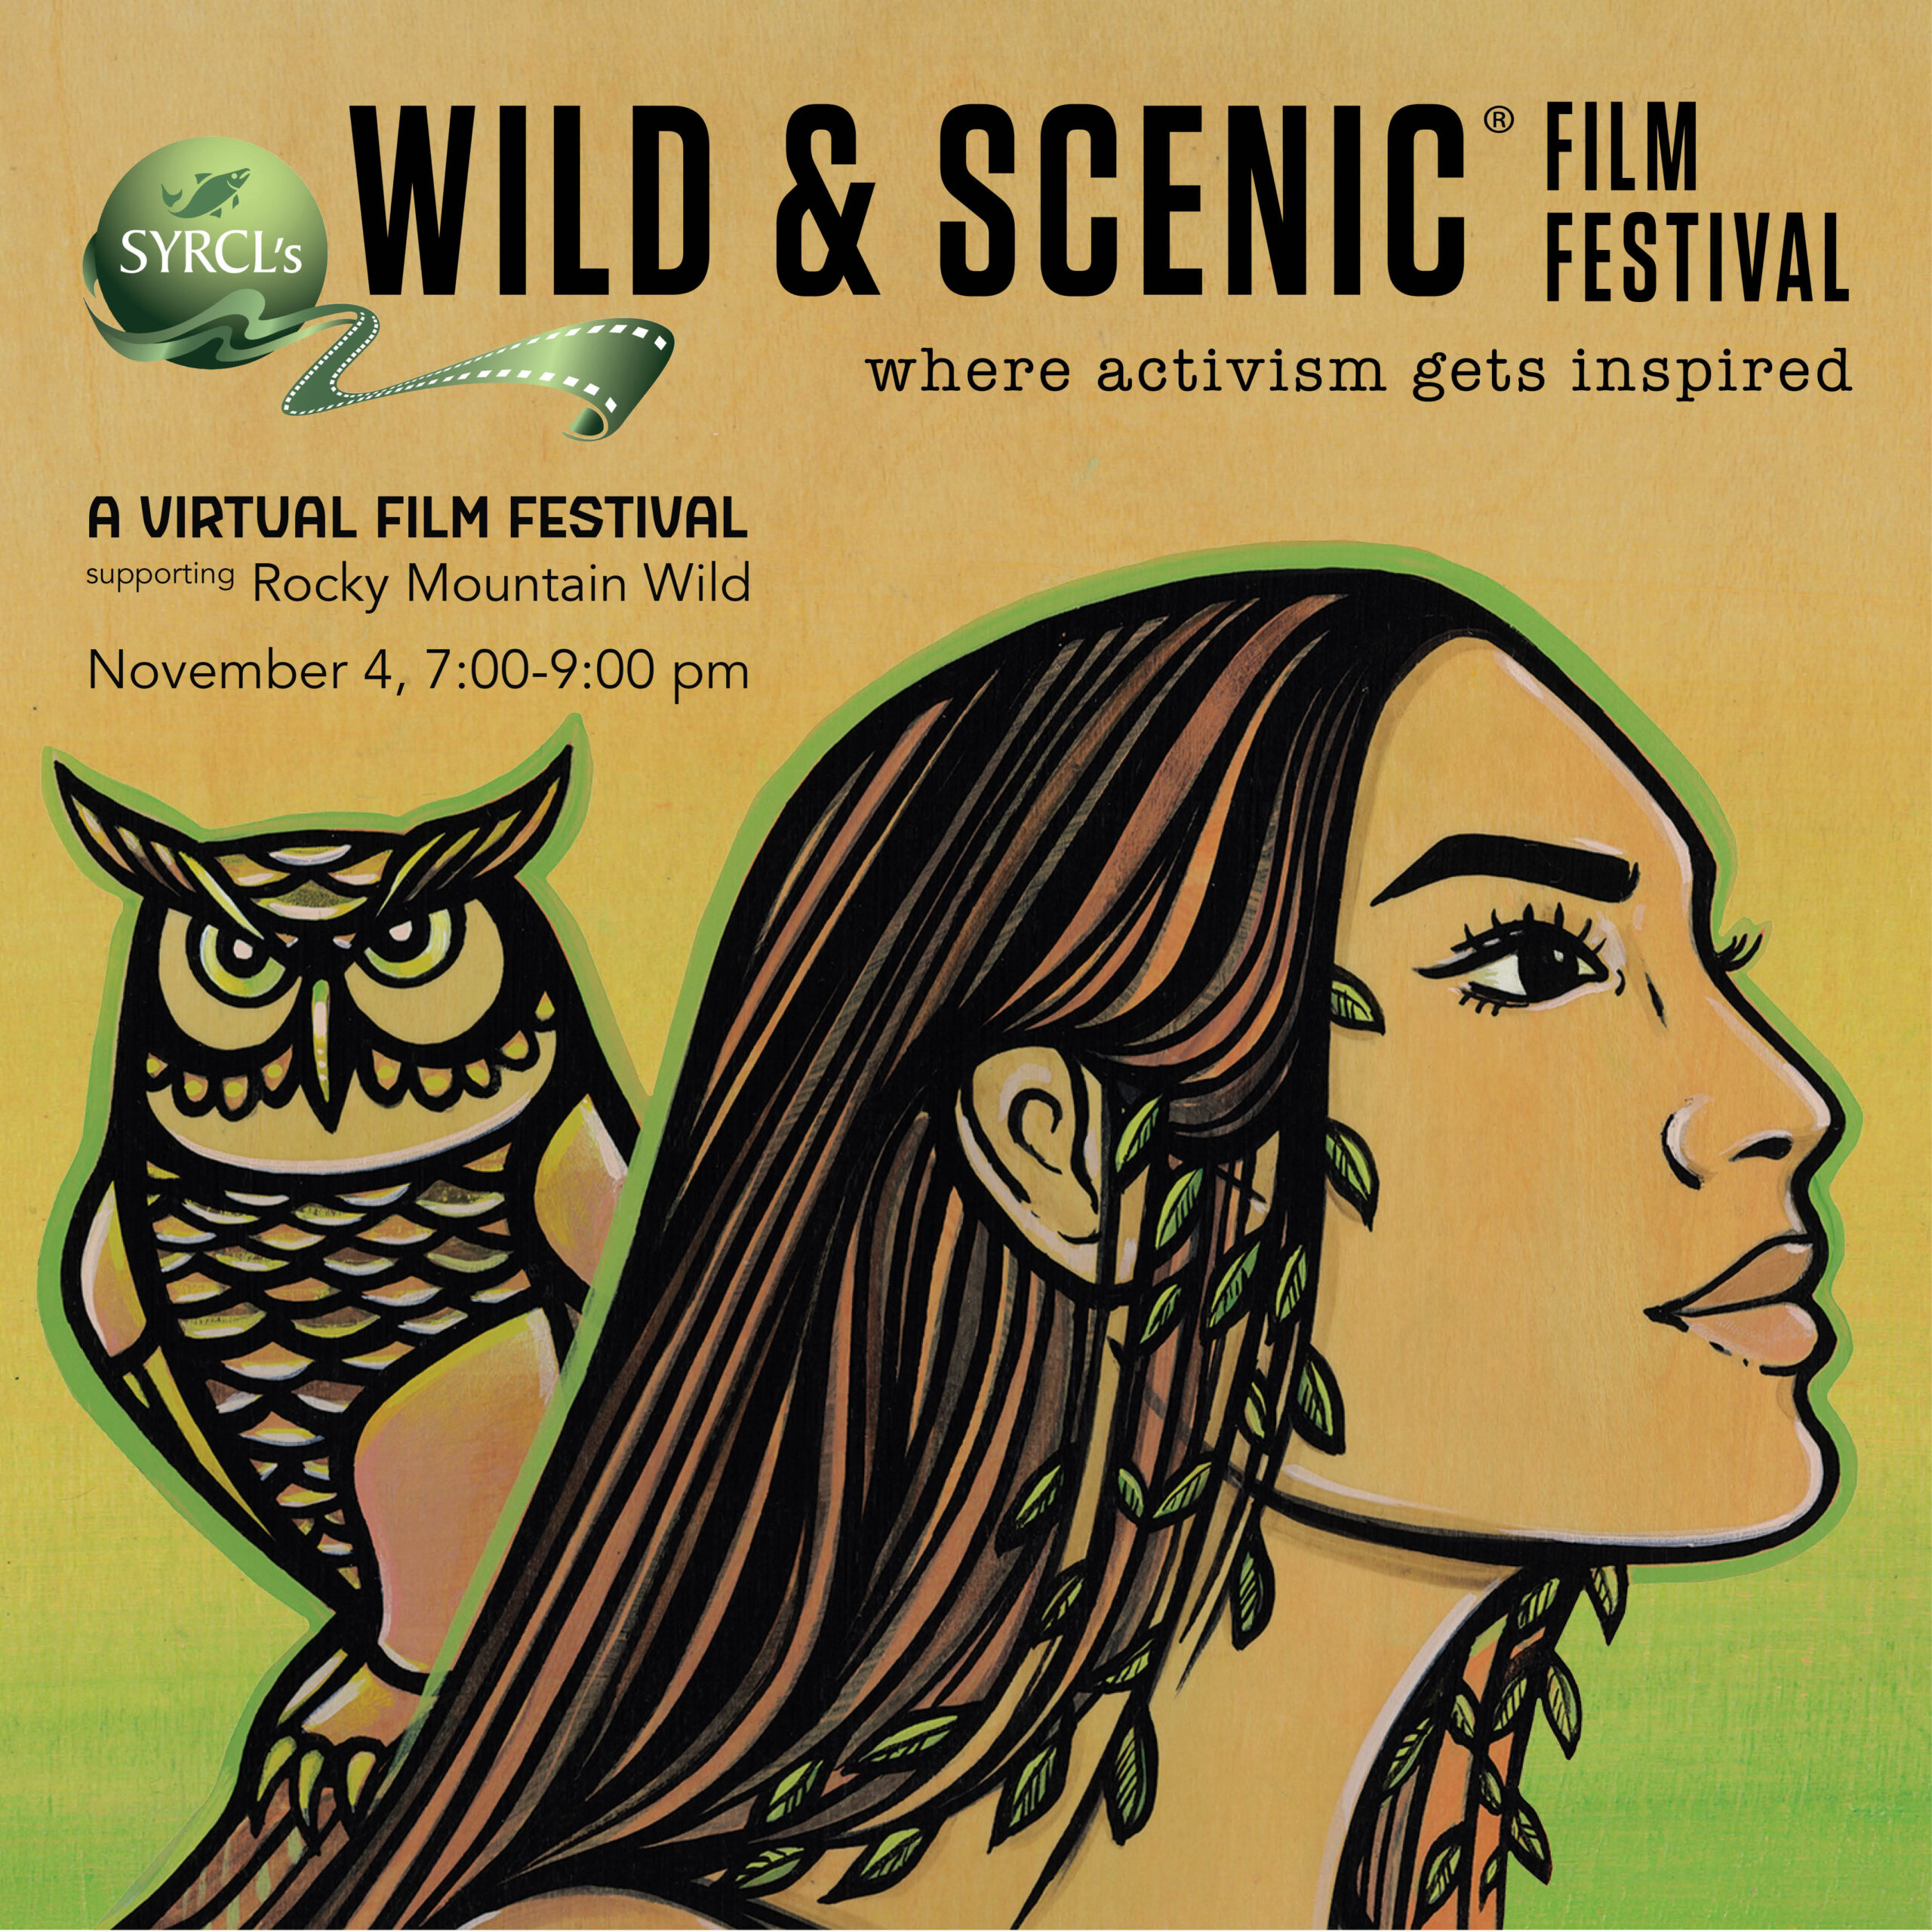 Instagram-sized image for Wild & Scenic Film Festival with dates